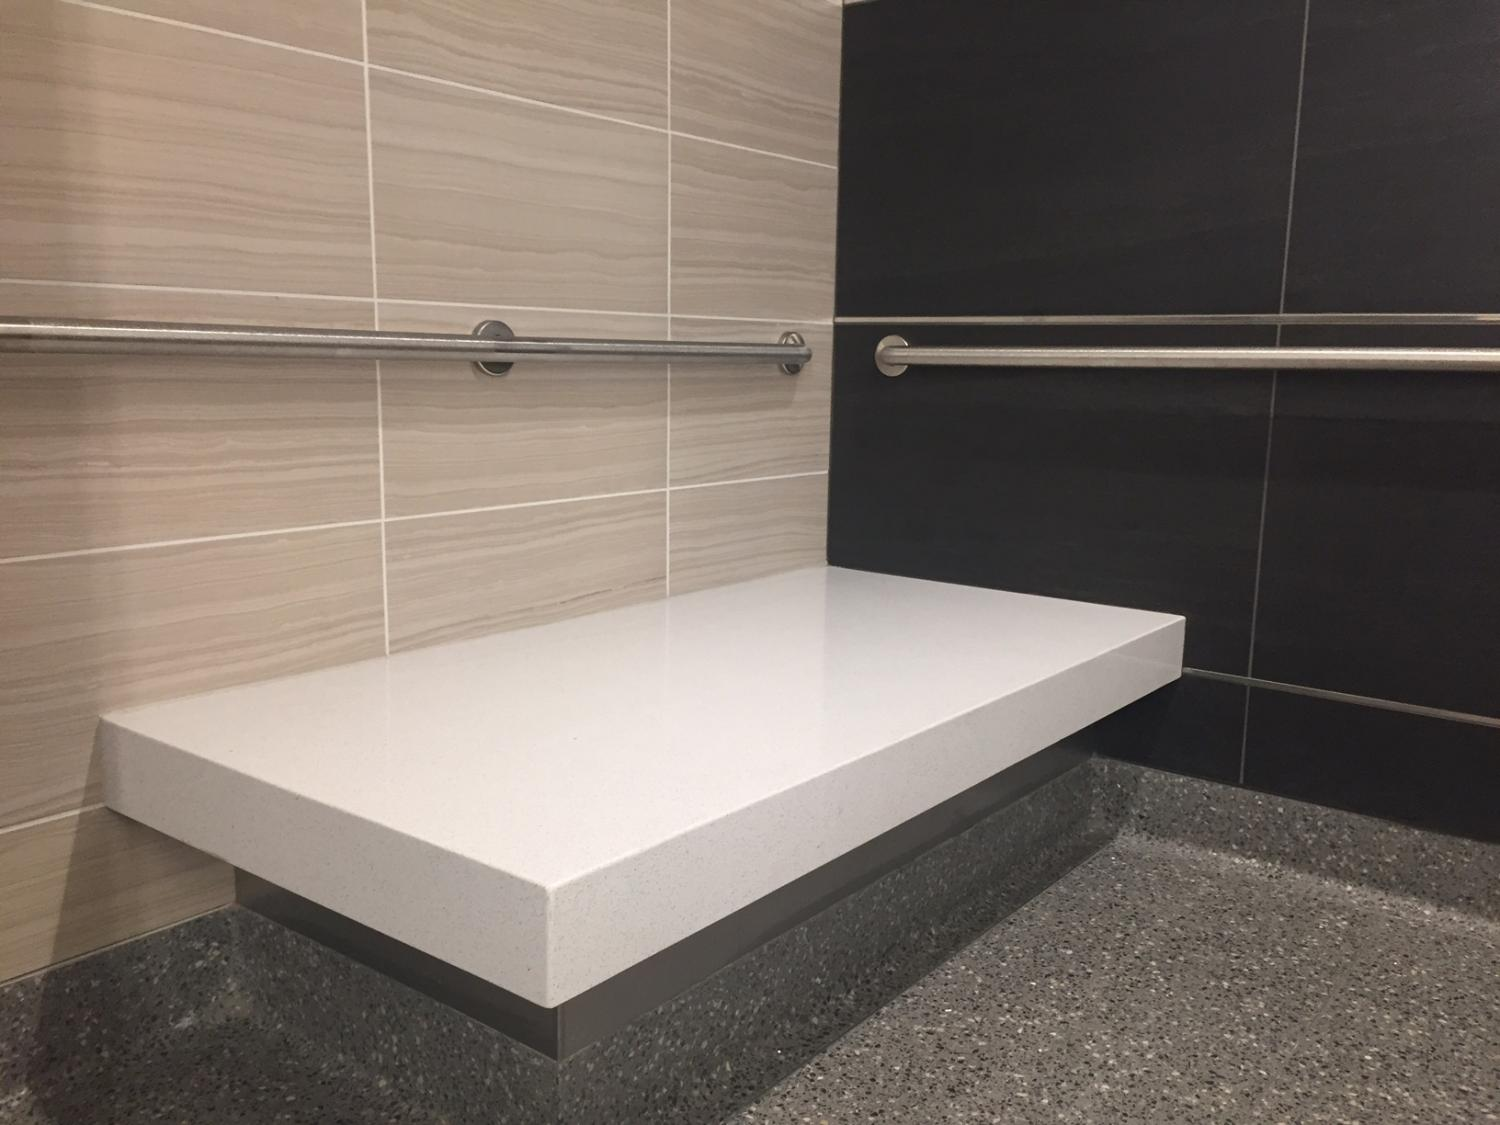 Phoenix Sky Harbor Airport Installs Adult Changing Table Stations | KJZZ